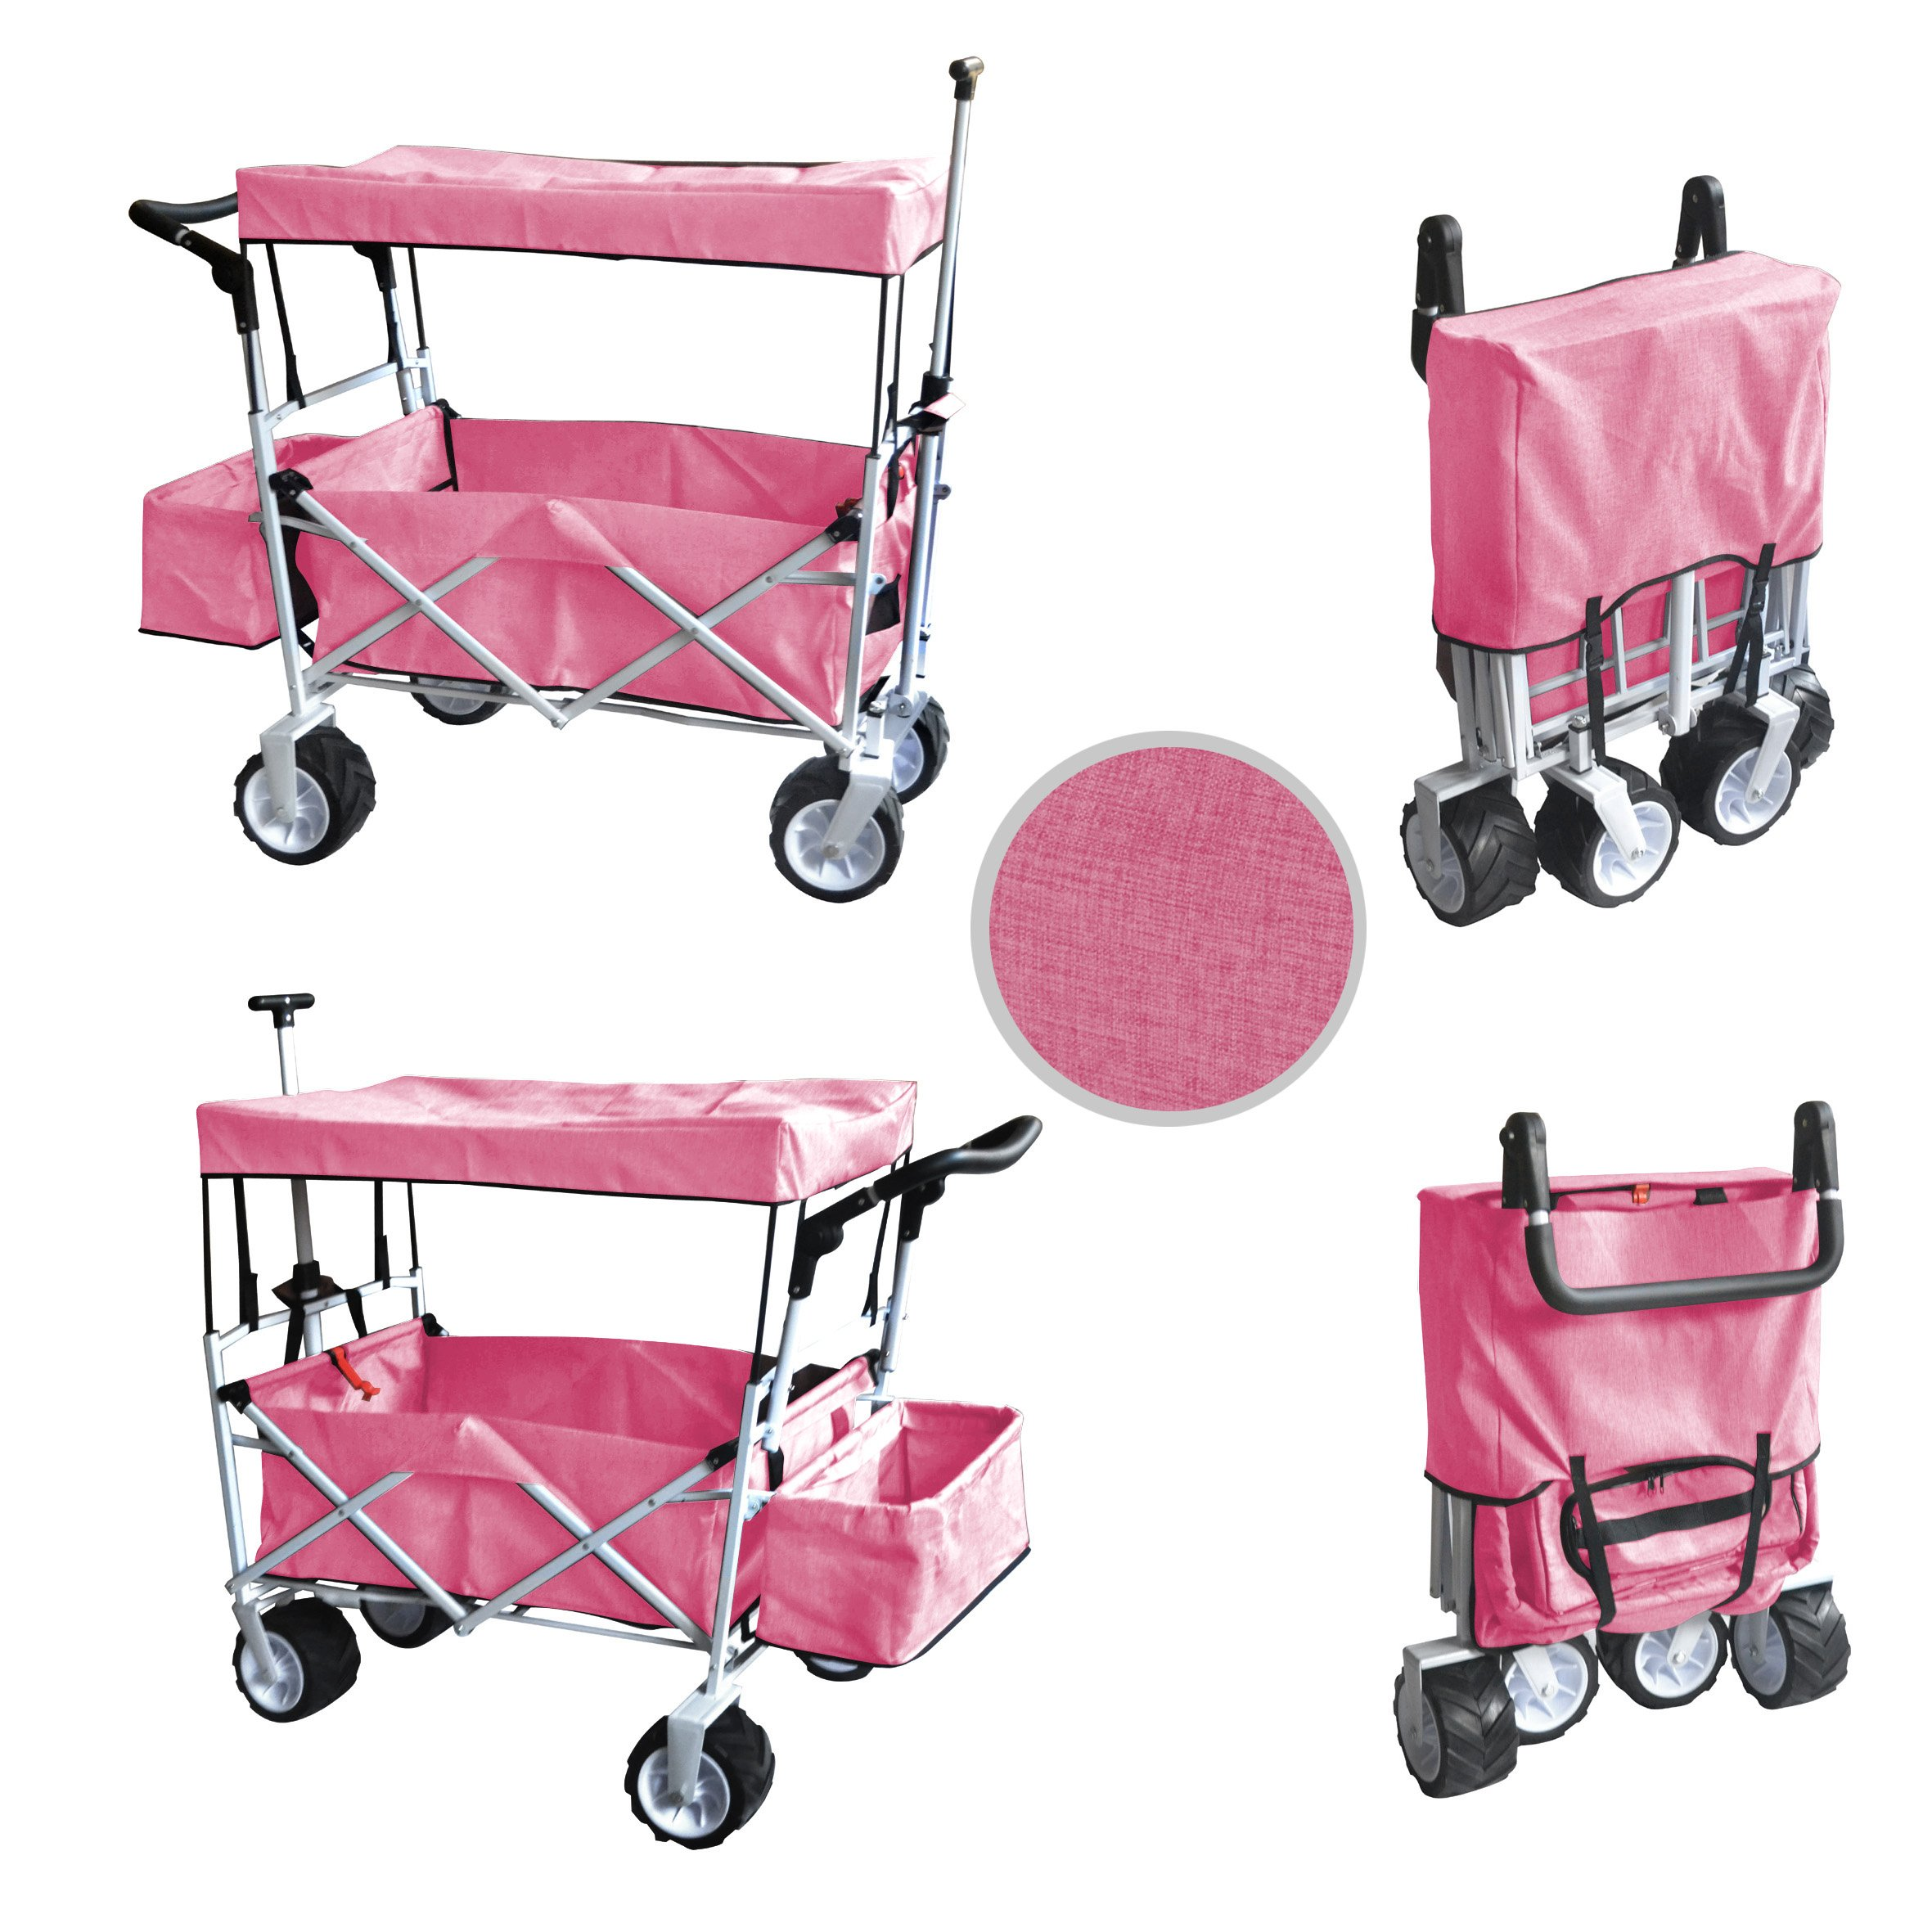 PINK JUMBO WHEEL PUSH AND PULL HANDLE FOLDING WAGON ALL PURPOSE GARDEN UTILITY BEACH SHOPPING TRAVEL CART OUTDOOR SPORT COLLAPSIBLE WITH CANOPY COVER FREE ICE COOLER BAG - EASY SETUP NO TOOL NECESSARY